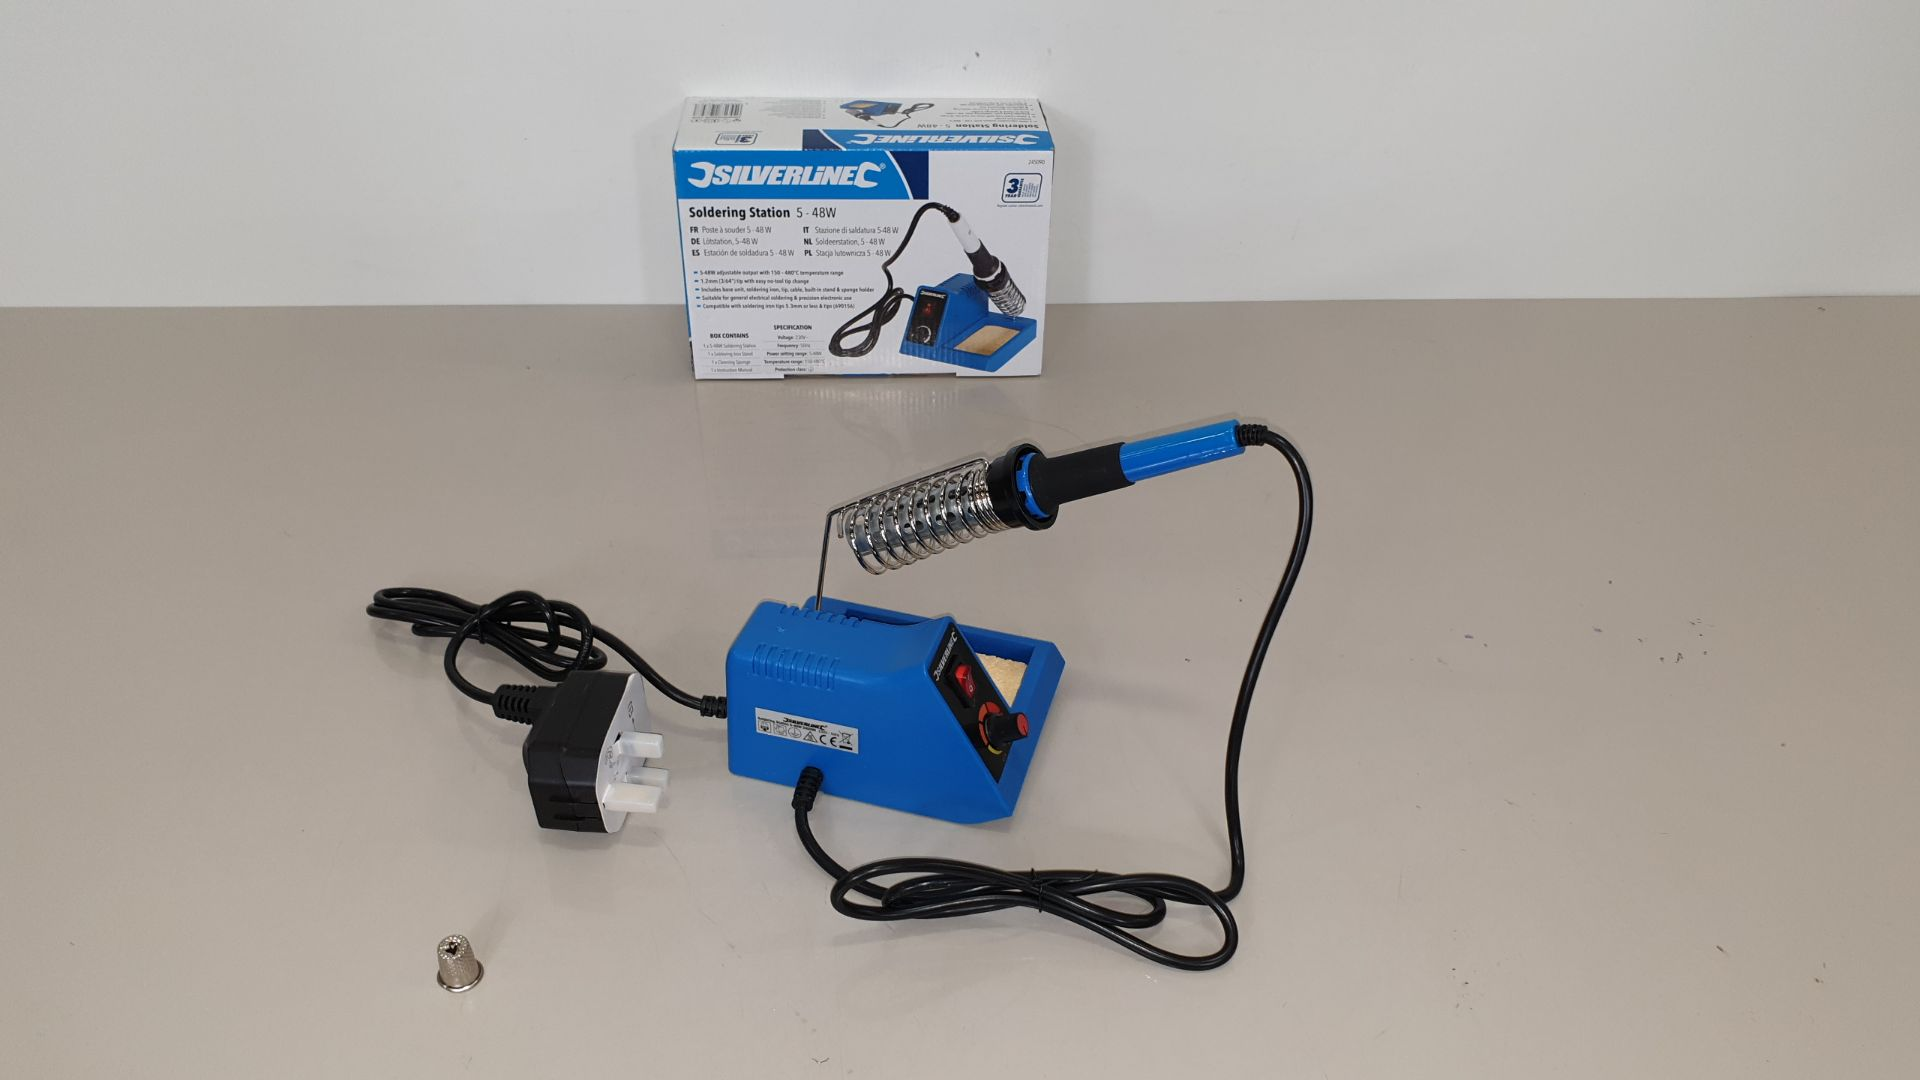 Lot 227 - 20 X BRAND NEW SILVERLINE SOLDERING STATIONS 5-48W (PROD CODE 245090) - TRADE PRICE £31.34 EACH (EXC